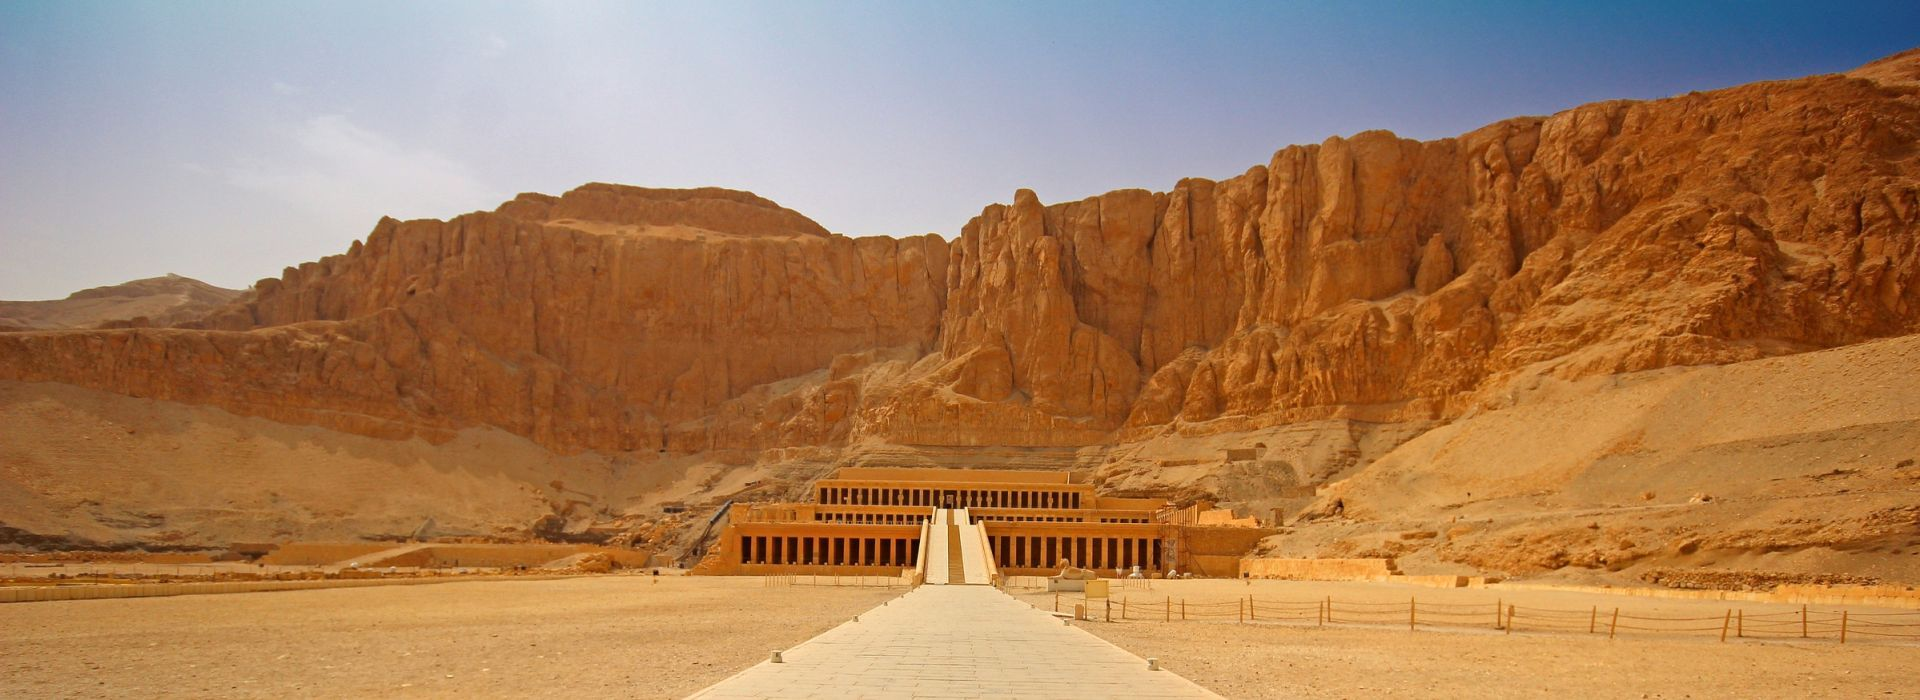 War sites Tours in Egypt